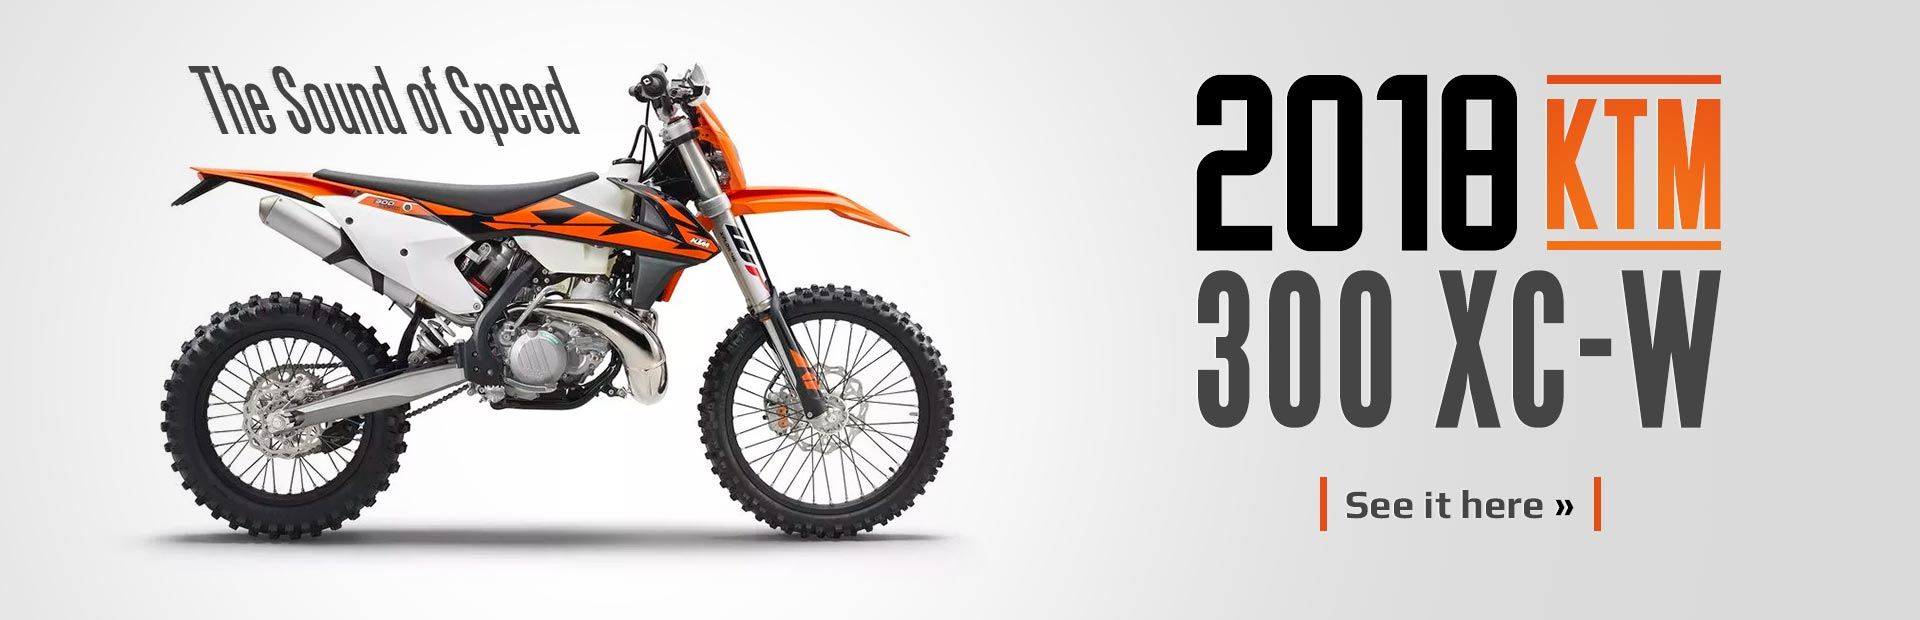 The 2018 KTM 300 XC-W: Click here for details!